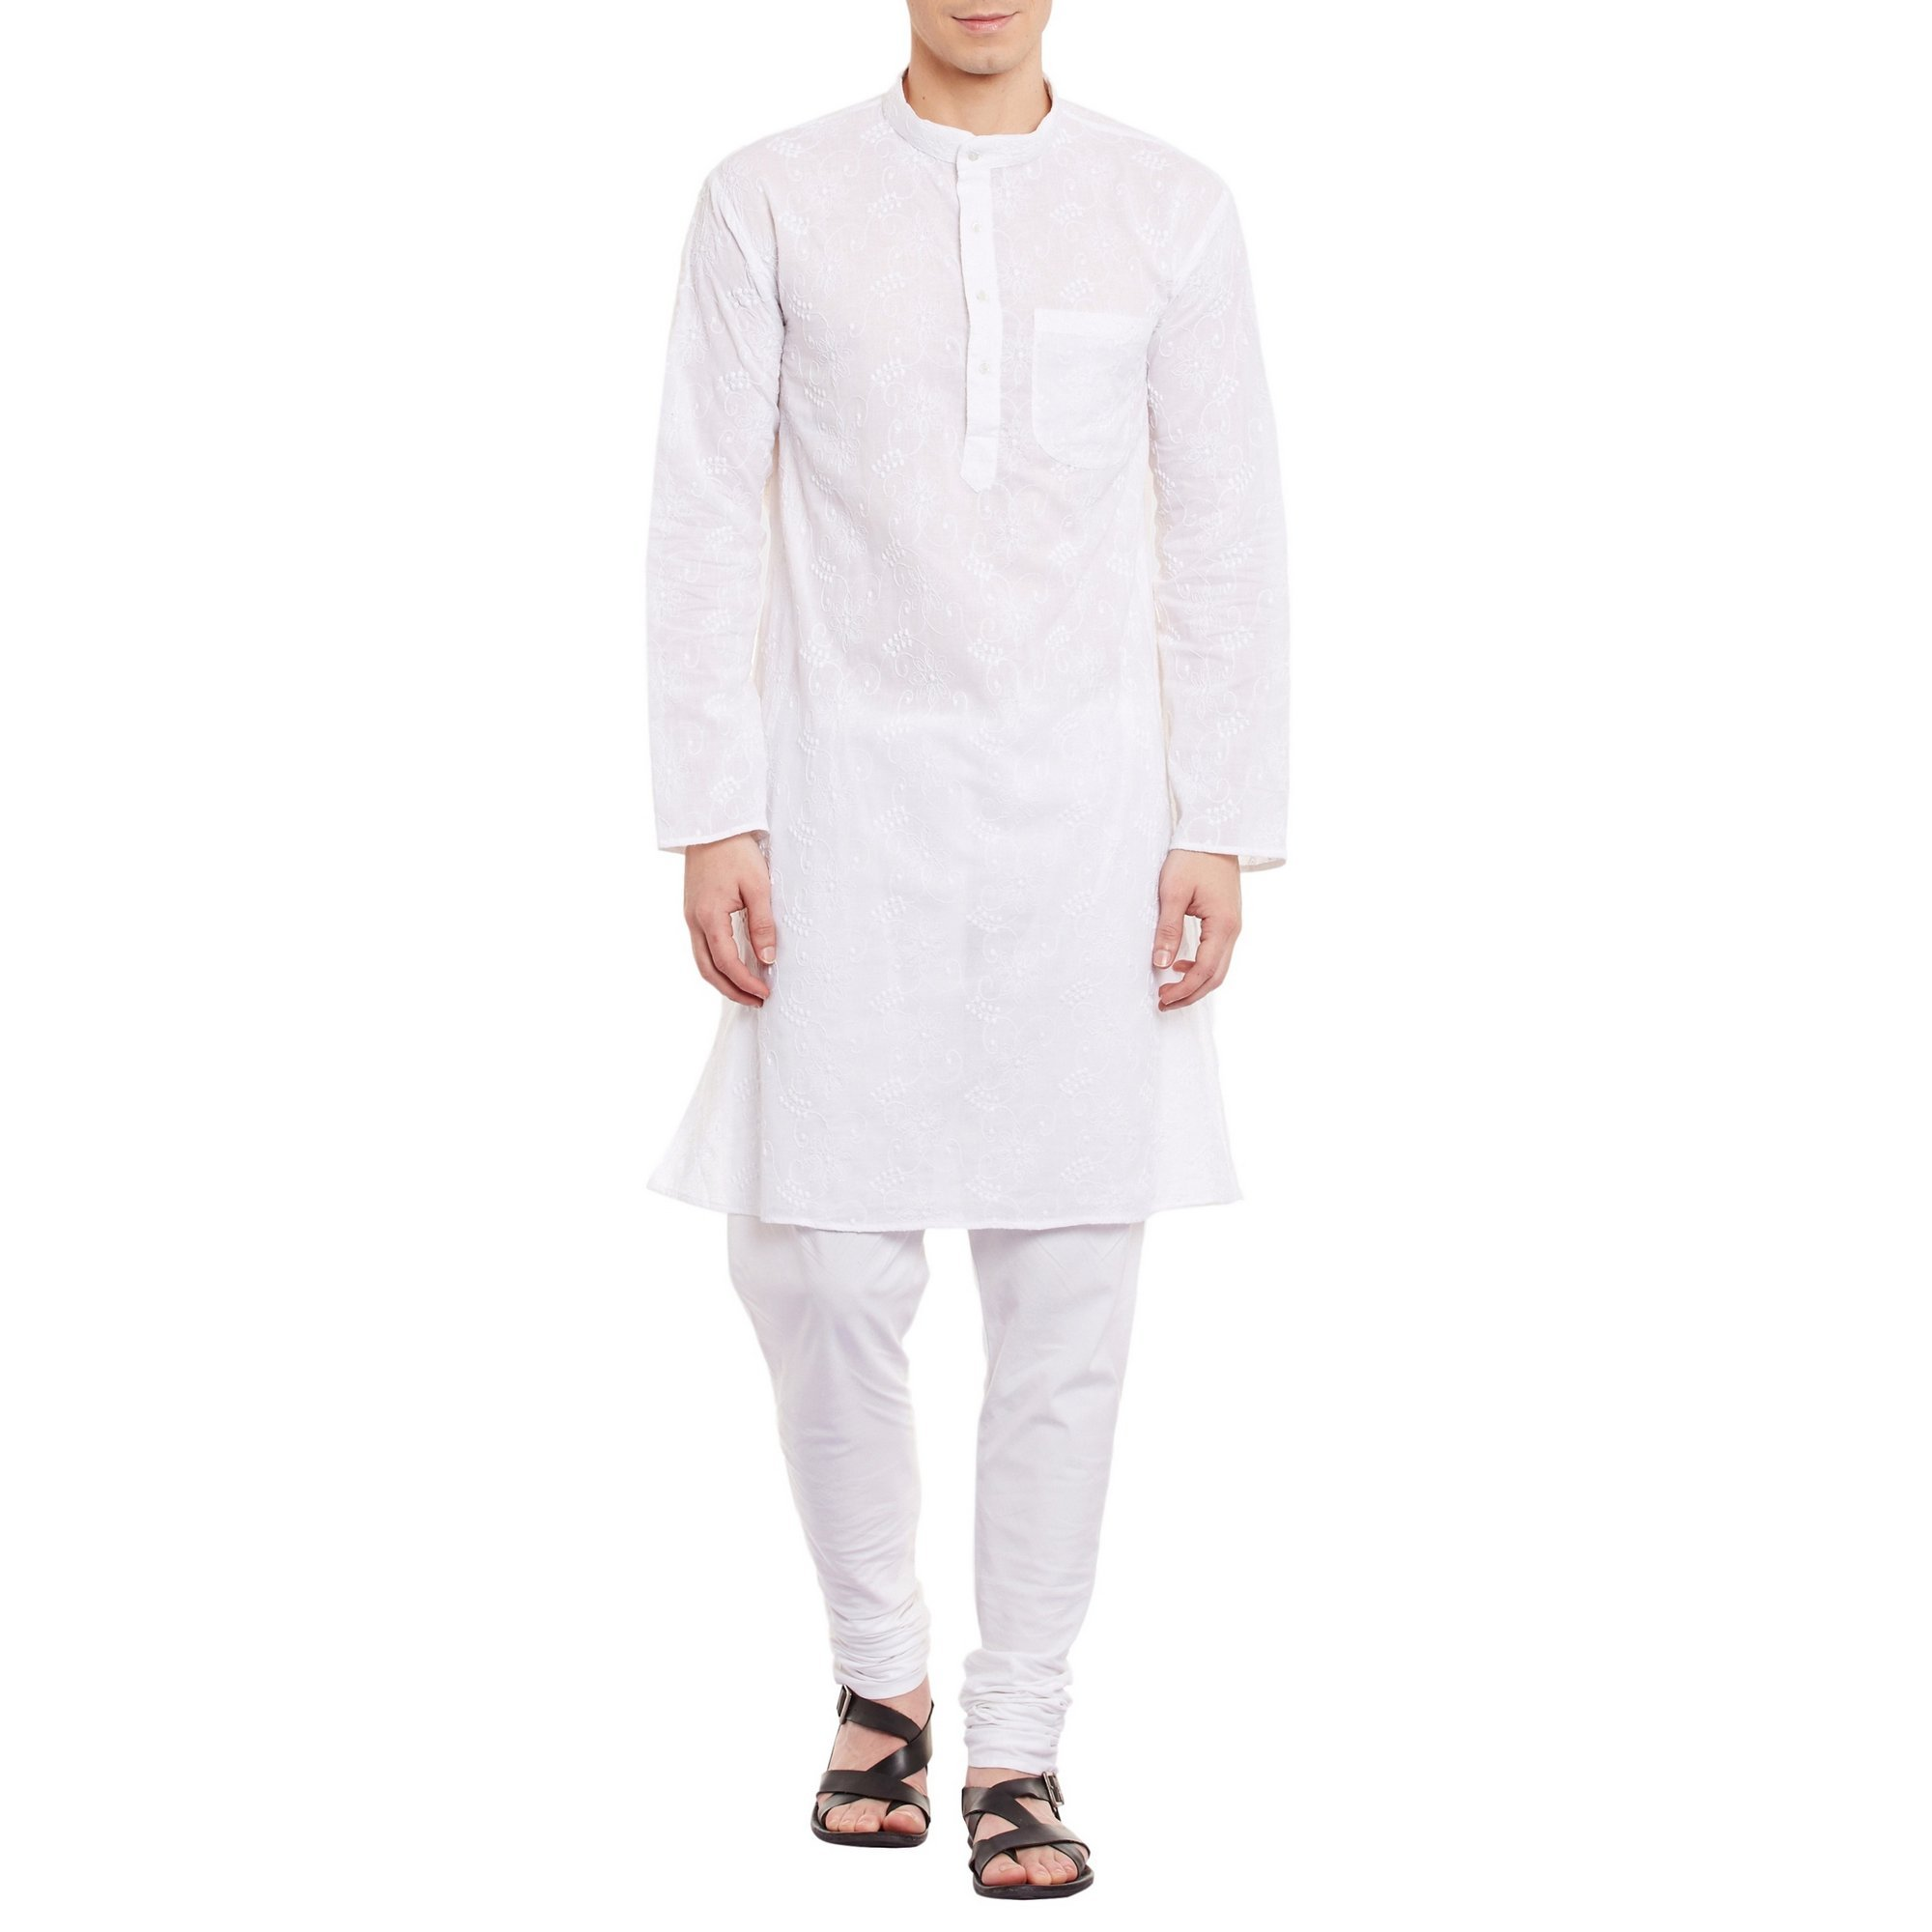 ShalinIndia Mens Embroidered Cutwork Cotton Kurta With Churidar Pajama Trousers Machine Embroidery,White Chest Size: 48 Inch